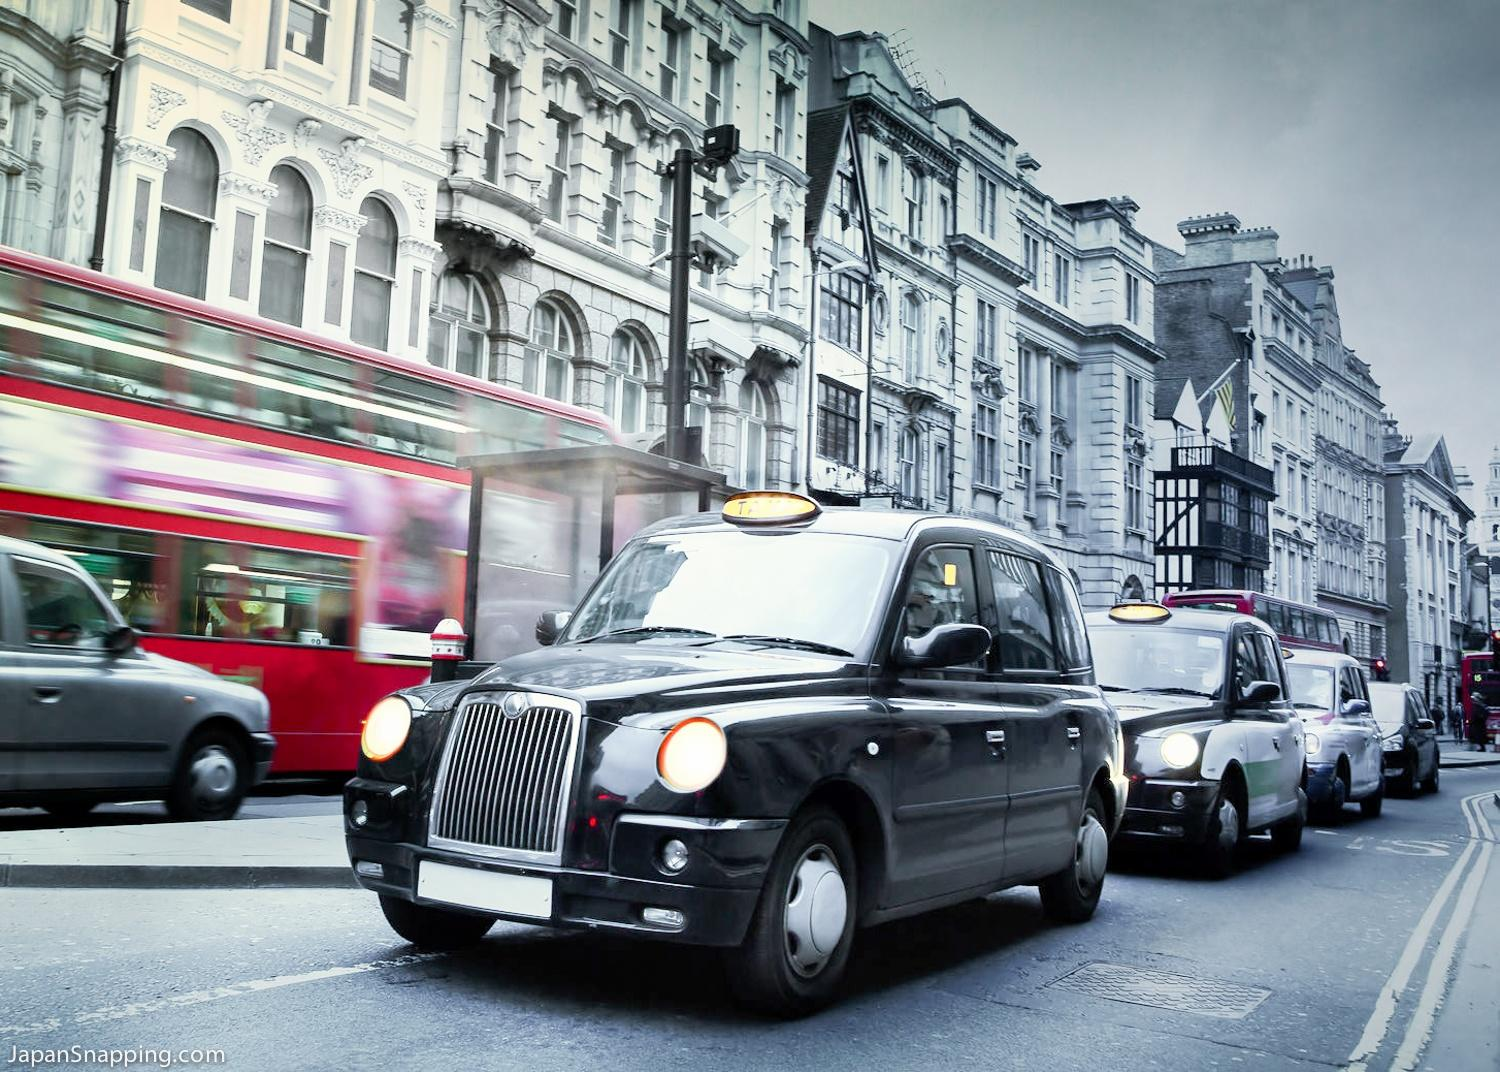 Uber: London black cab demo brings traffic chaos to city